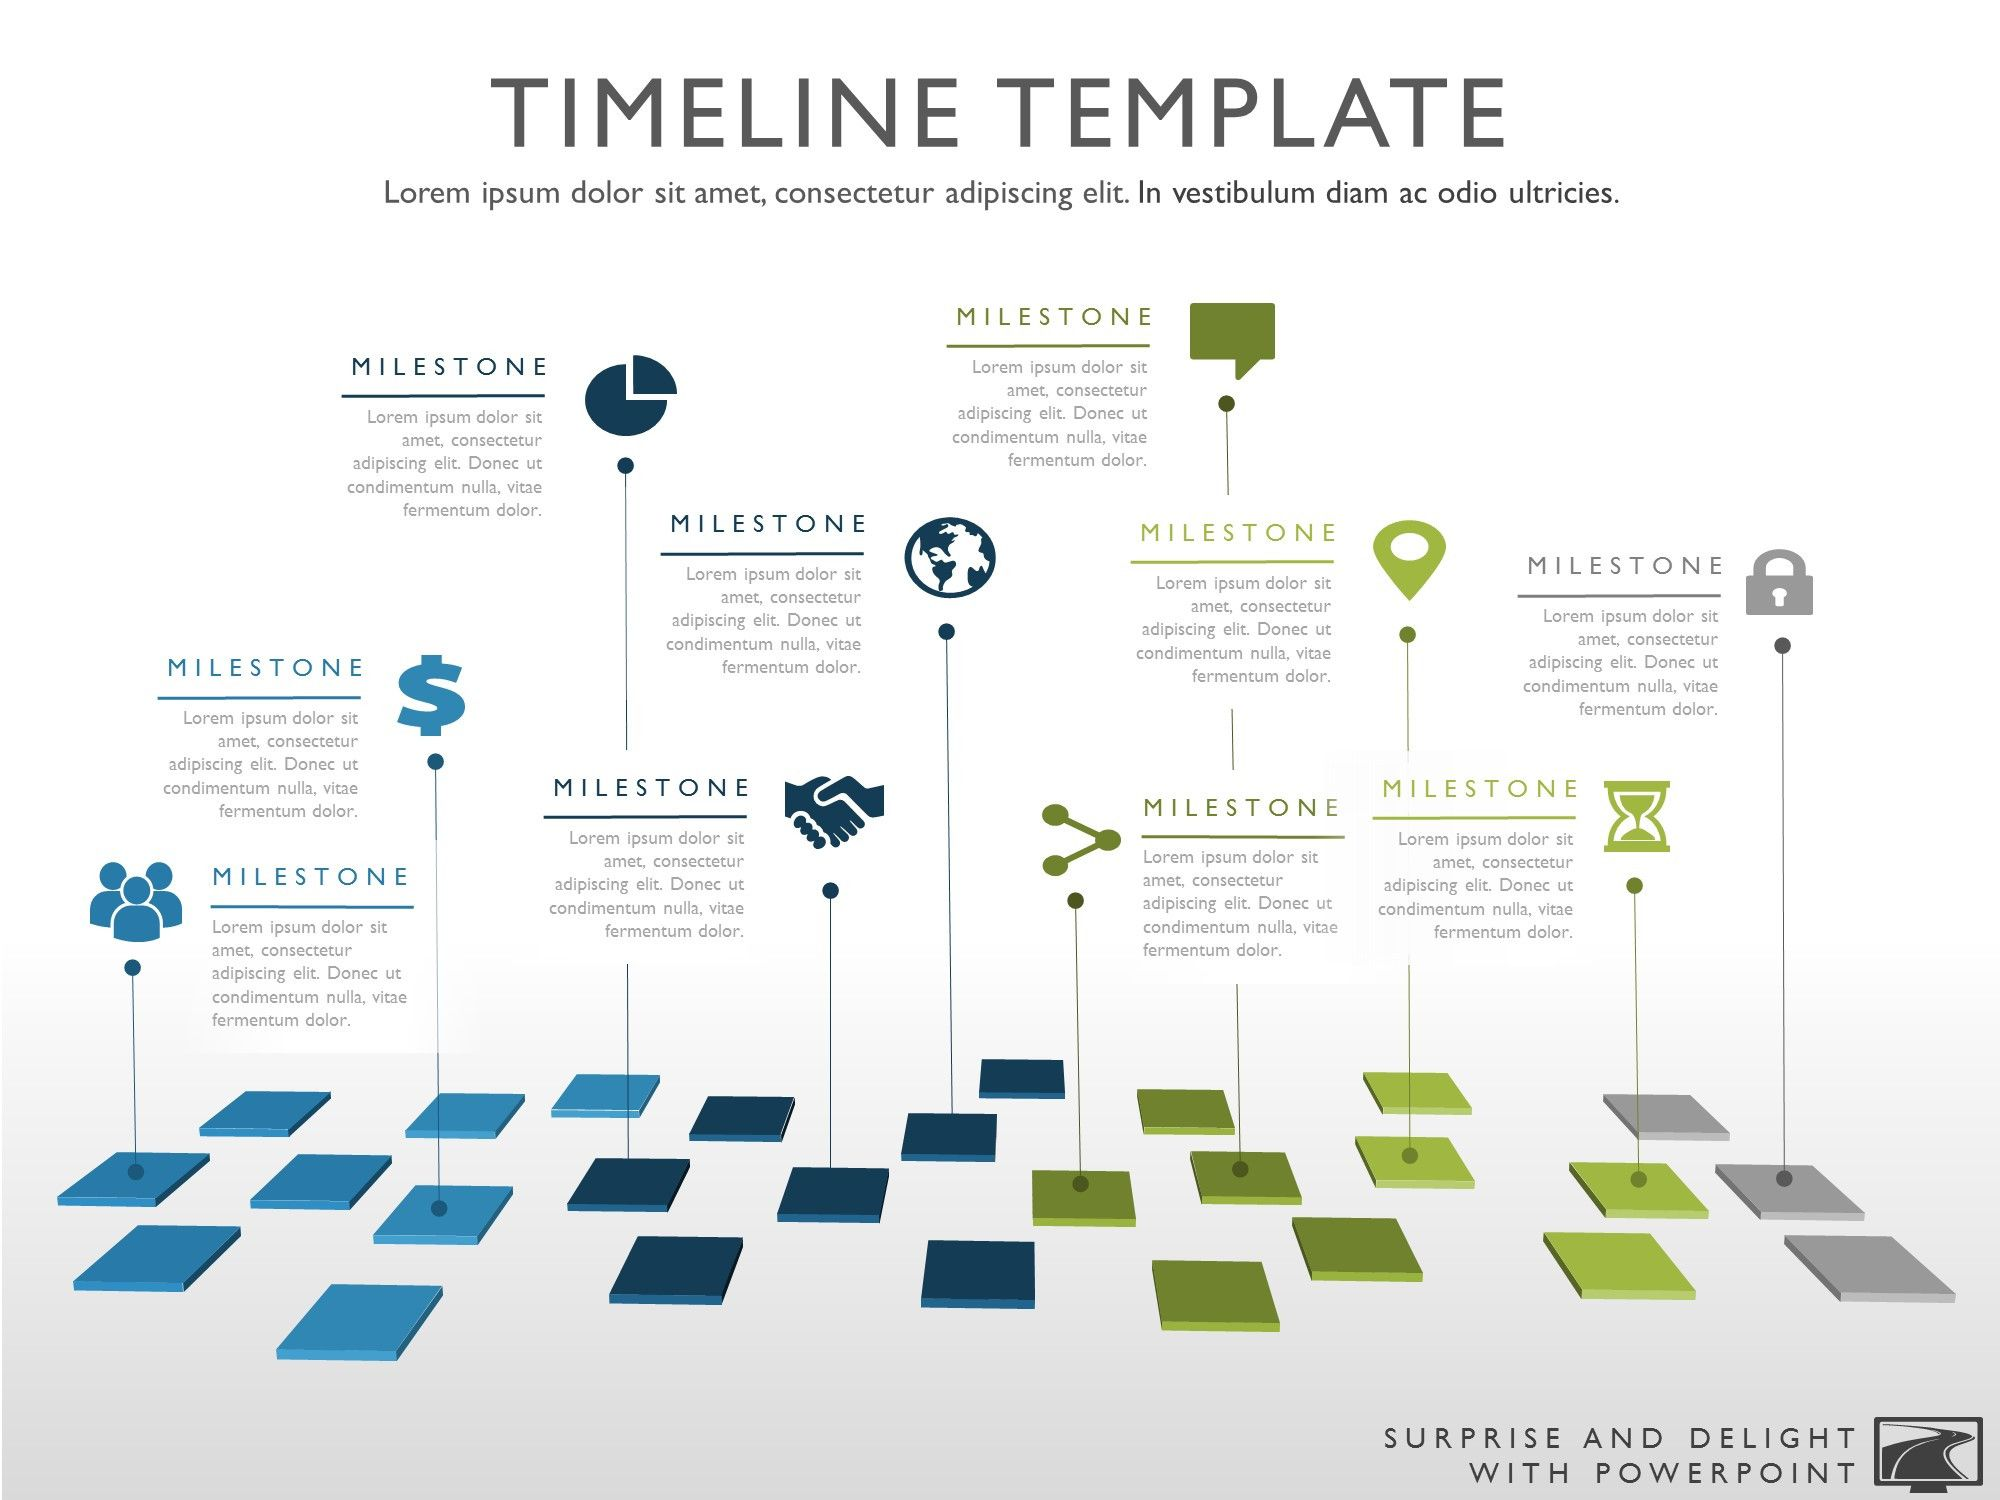 Timeline Template My Product Roadmap Work Pinterest - Milestone timeline template